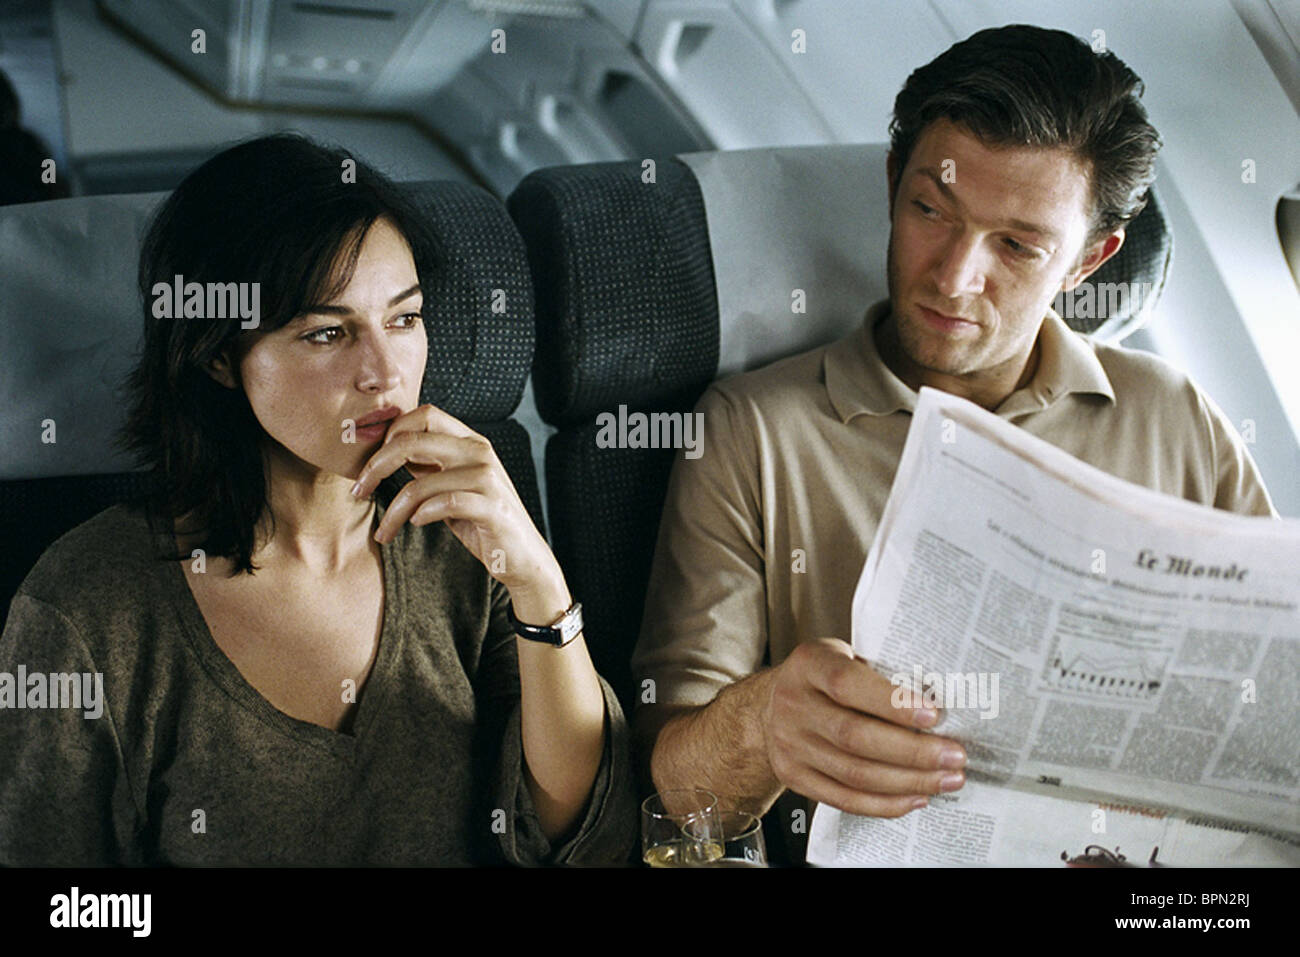 Monica Bellucci and Vincent Cassel were robbed 05/26/2009 55